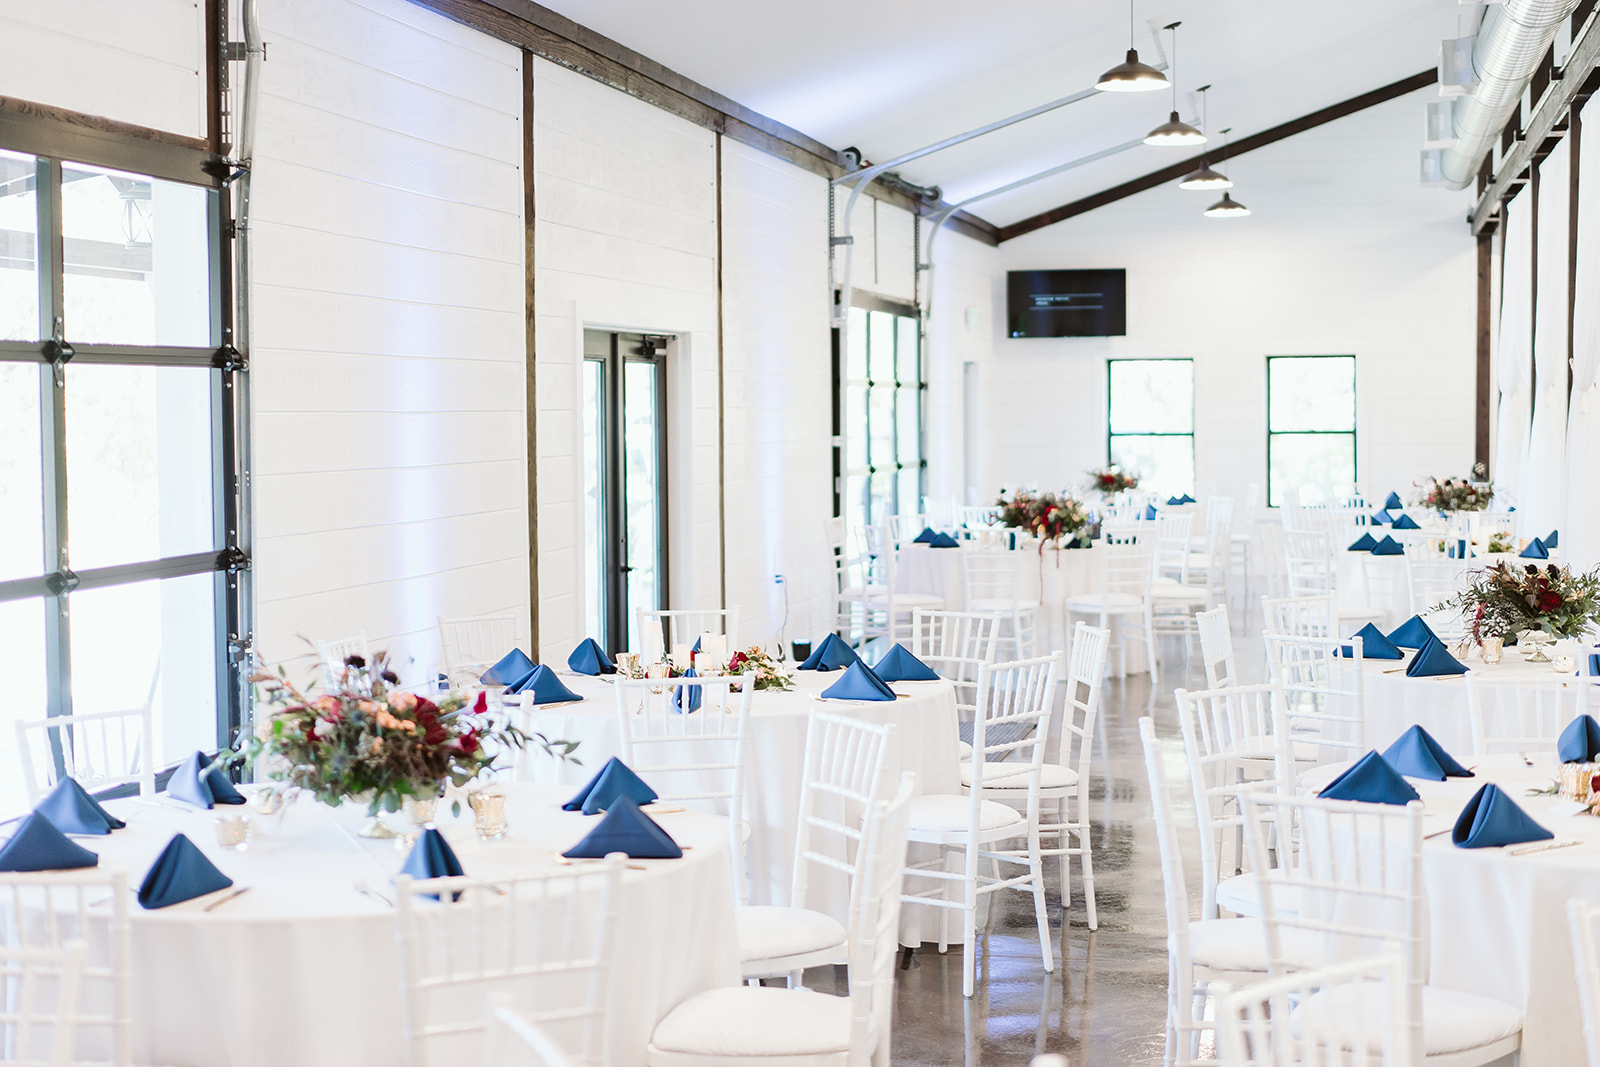 Tulsa Wedding Venue White Barn Dream Point Ranch 62.jpg